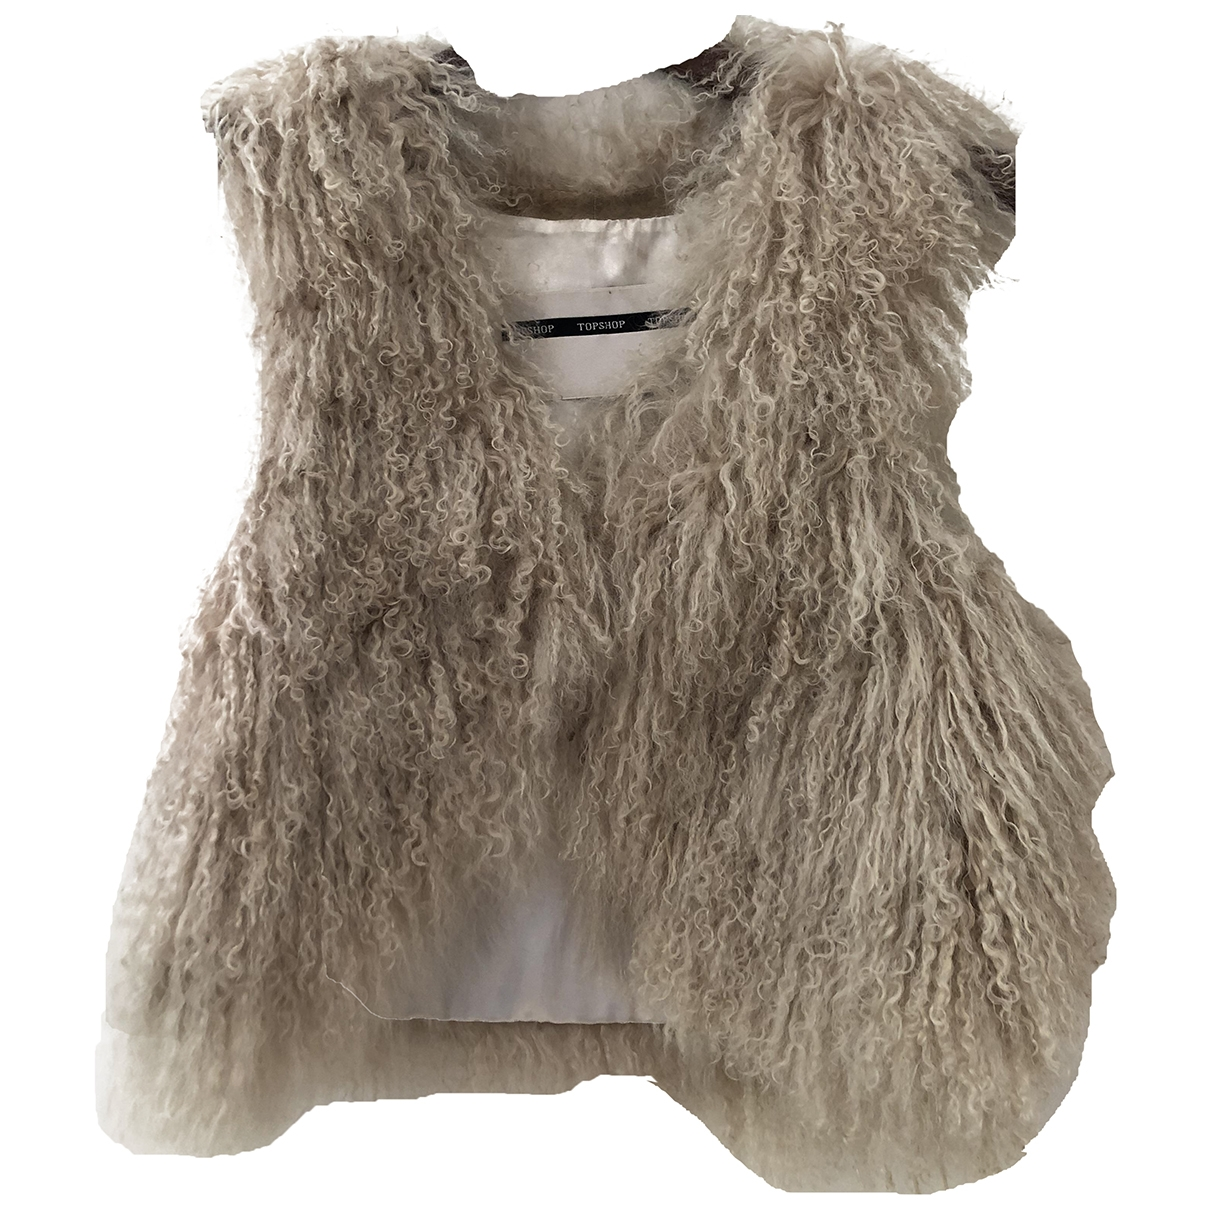 Tophop Boutique \N Jacke in  Weiss Wolle